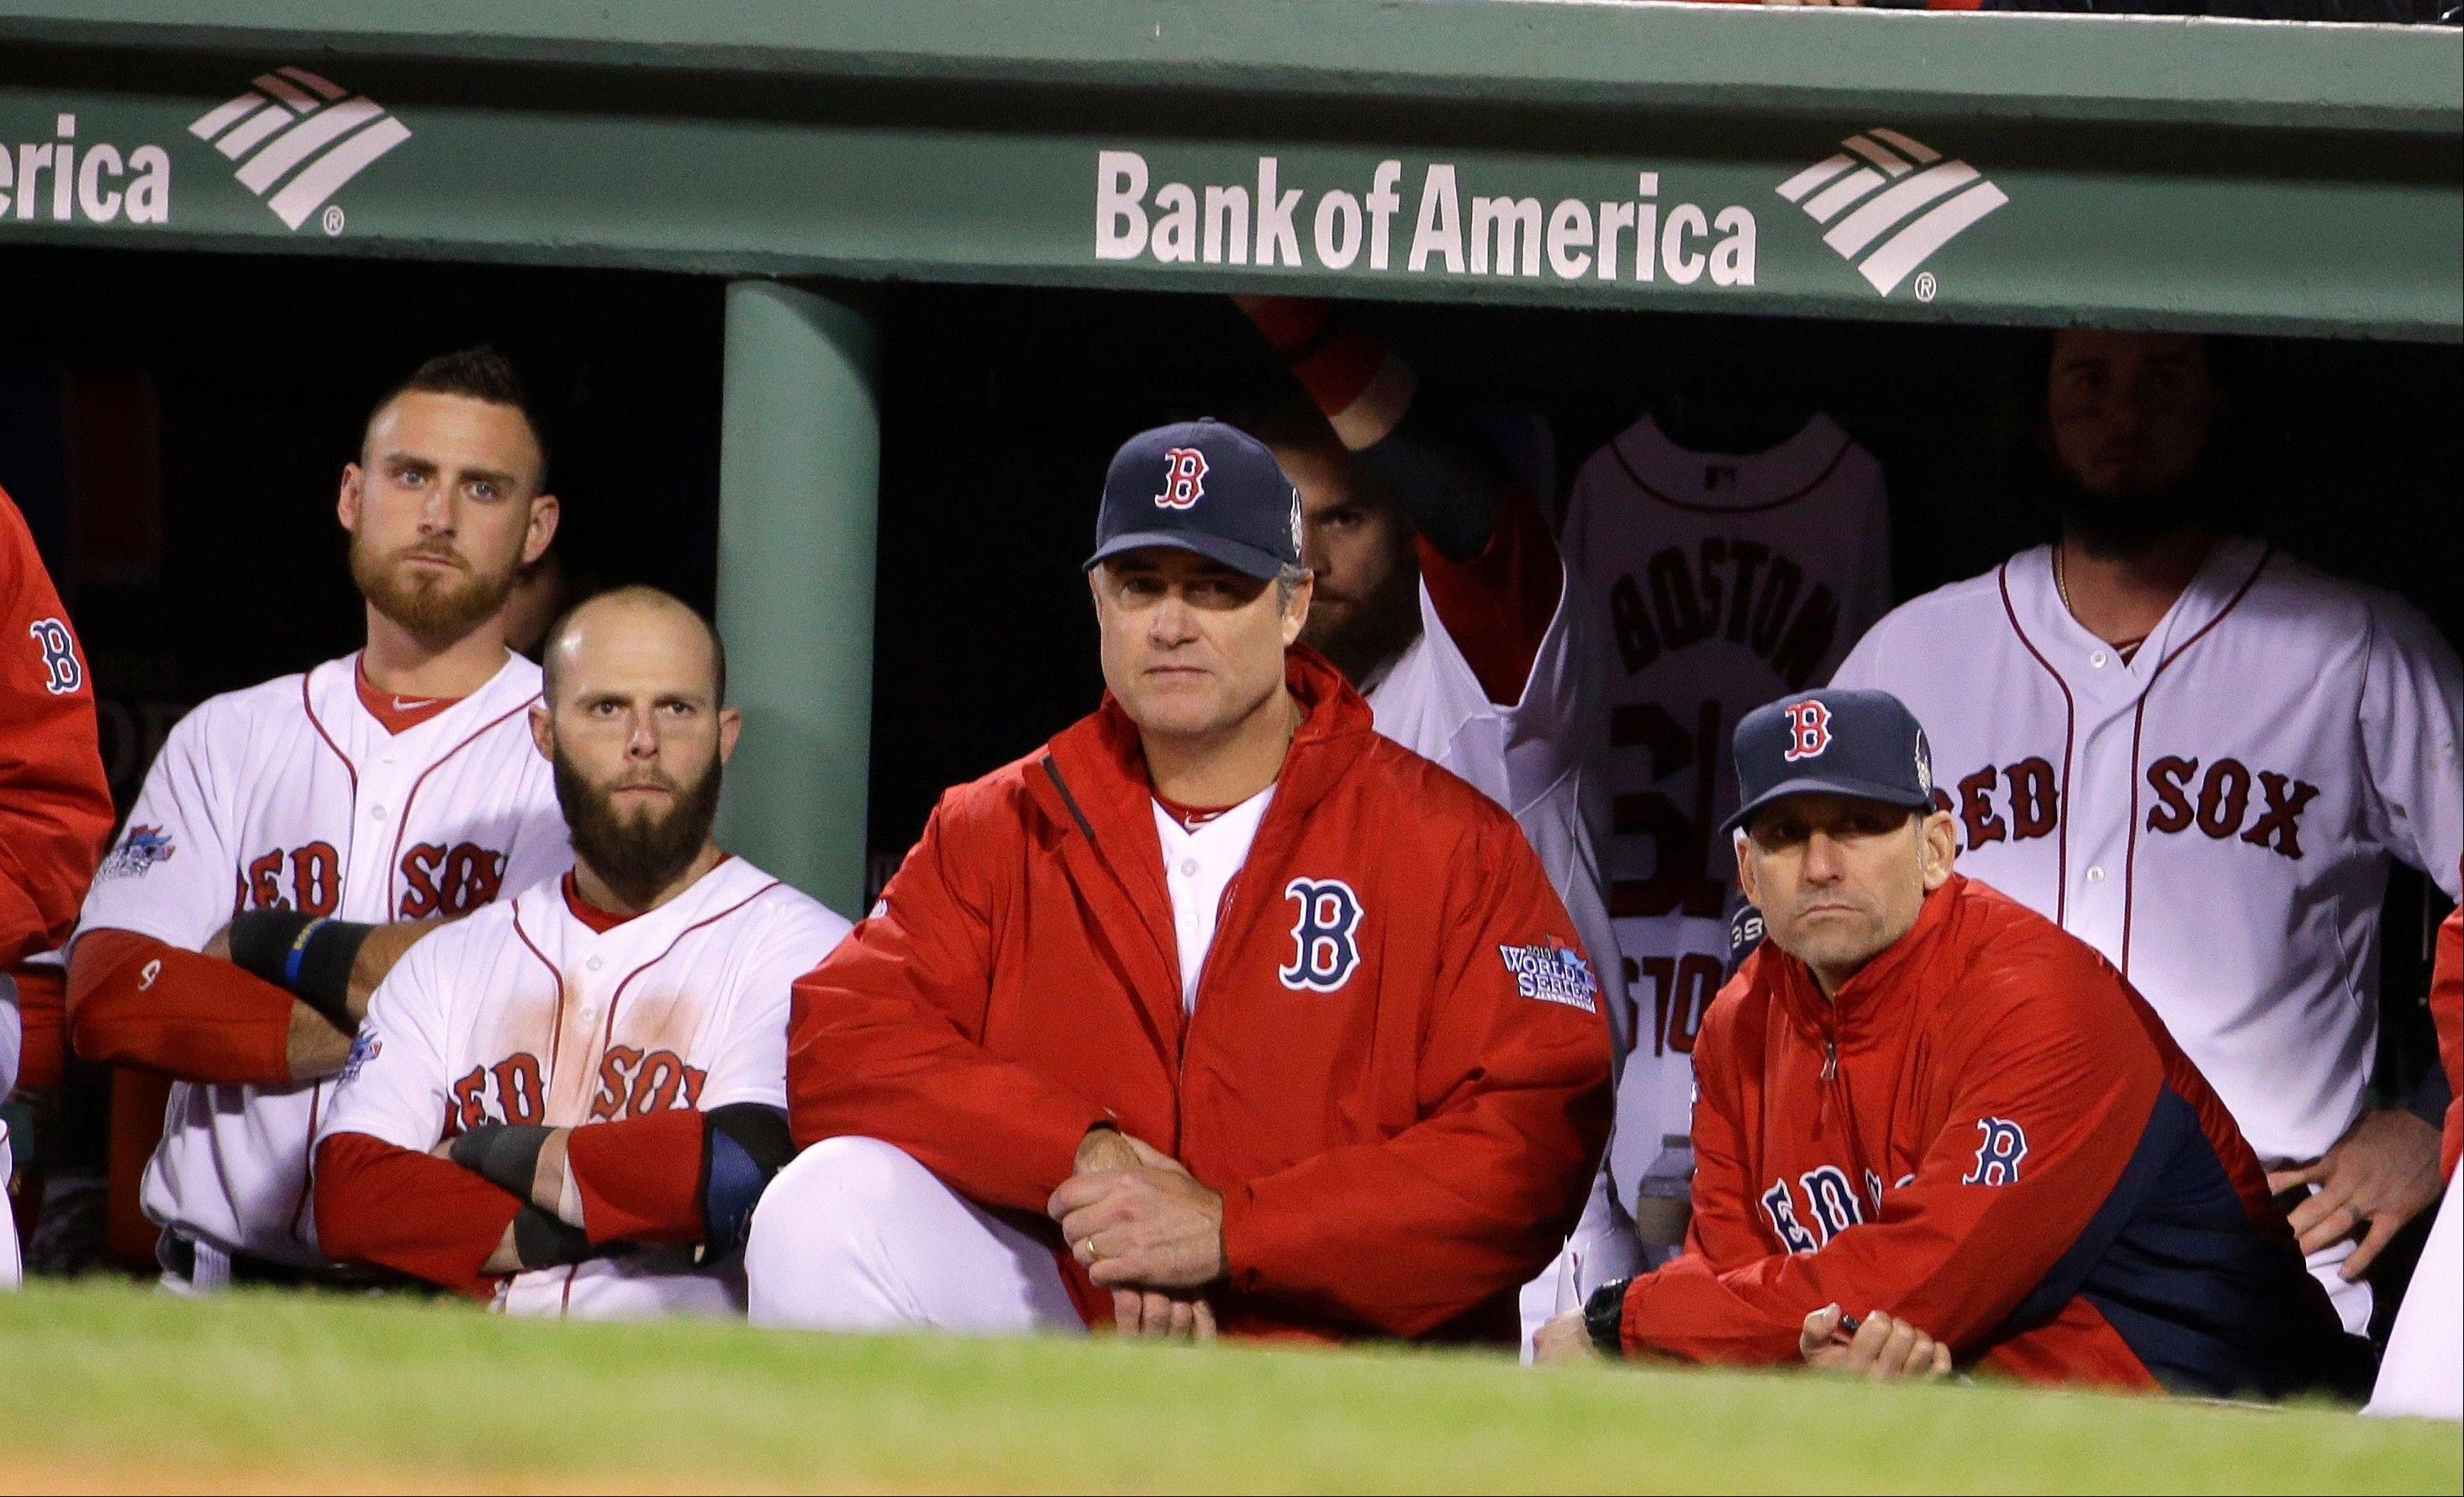 Boston Red Sox manager John Farrell and players watch during the ninth inning of Game 2.